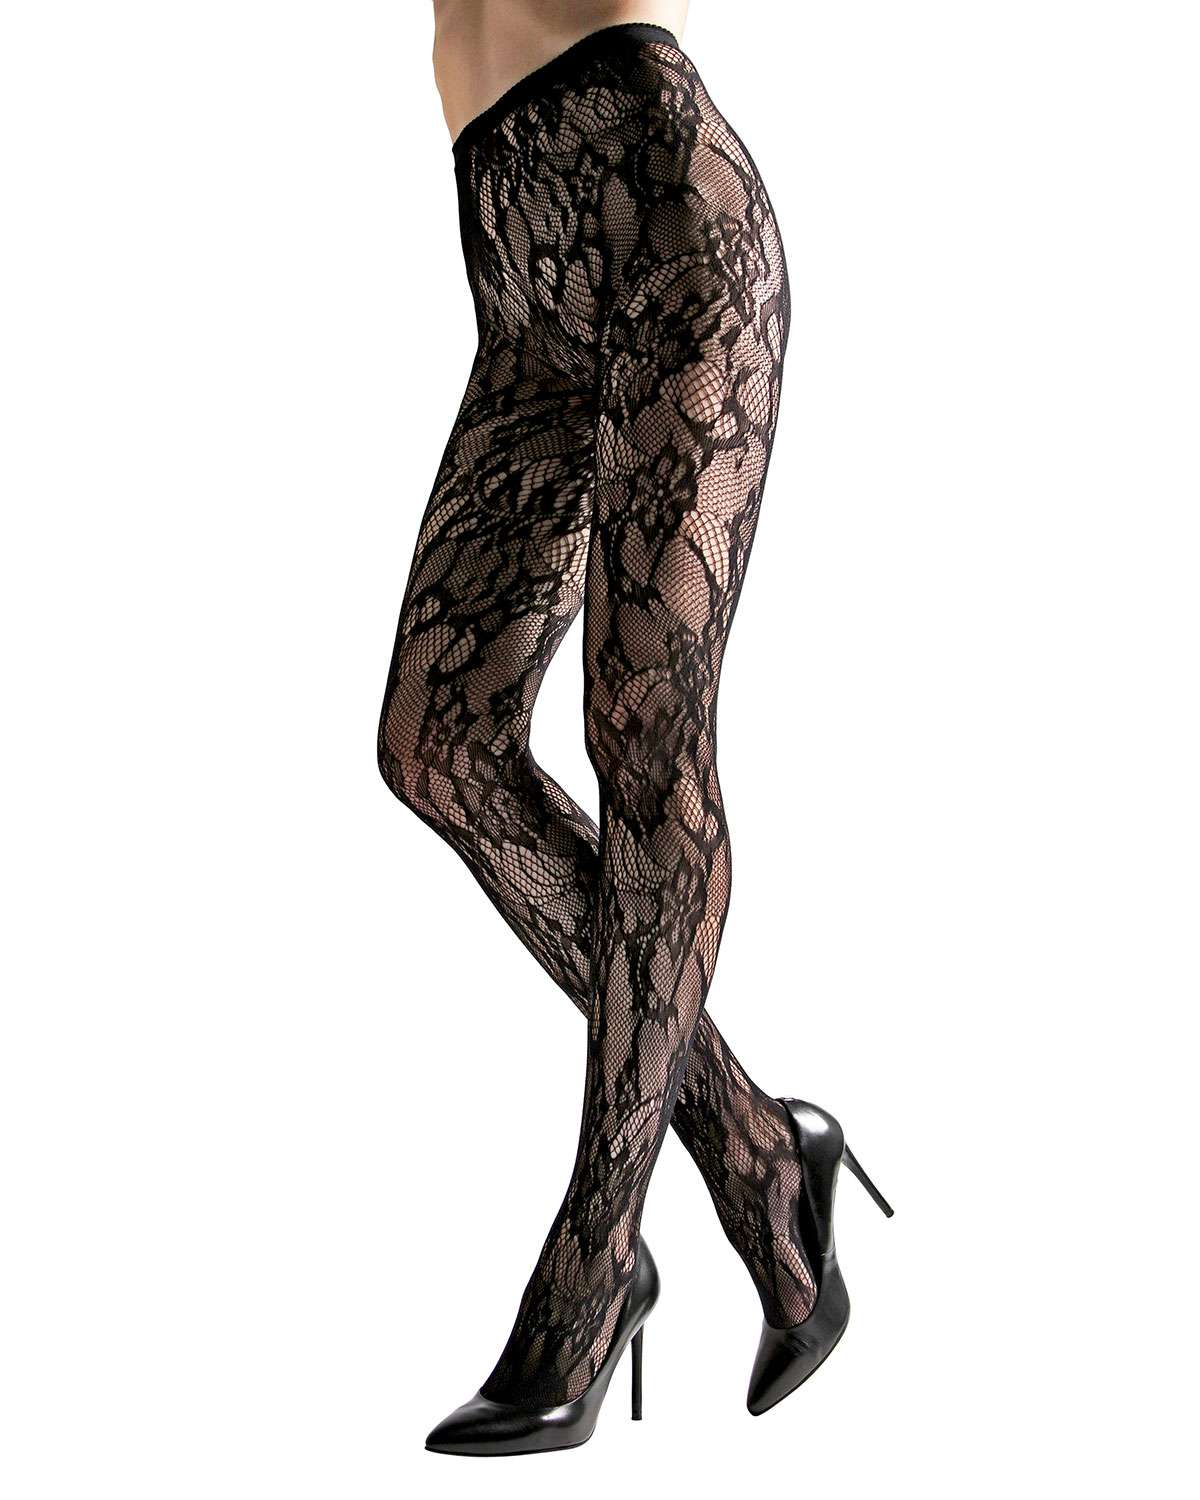 2-Pack Lace Cutout Net & Fishnet Tights